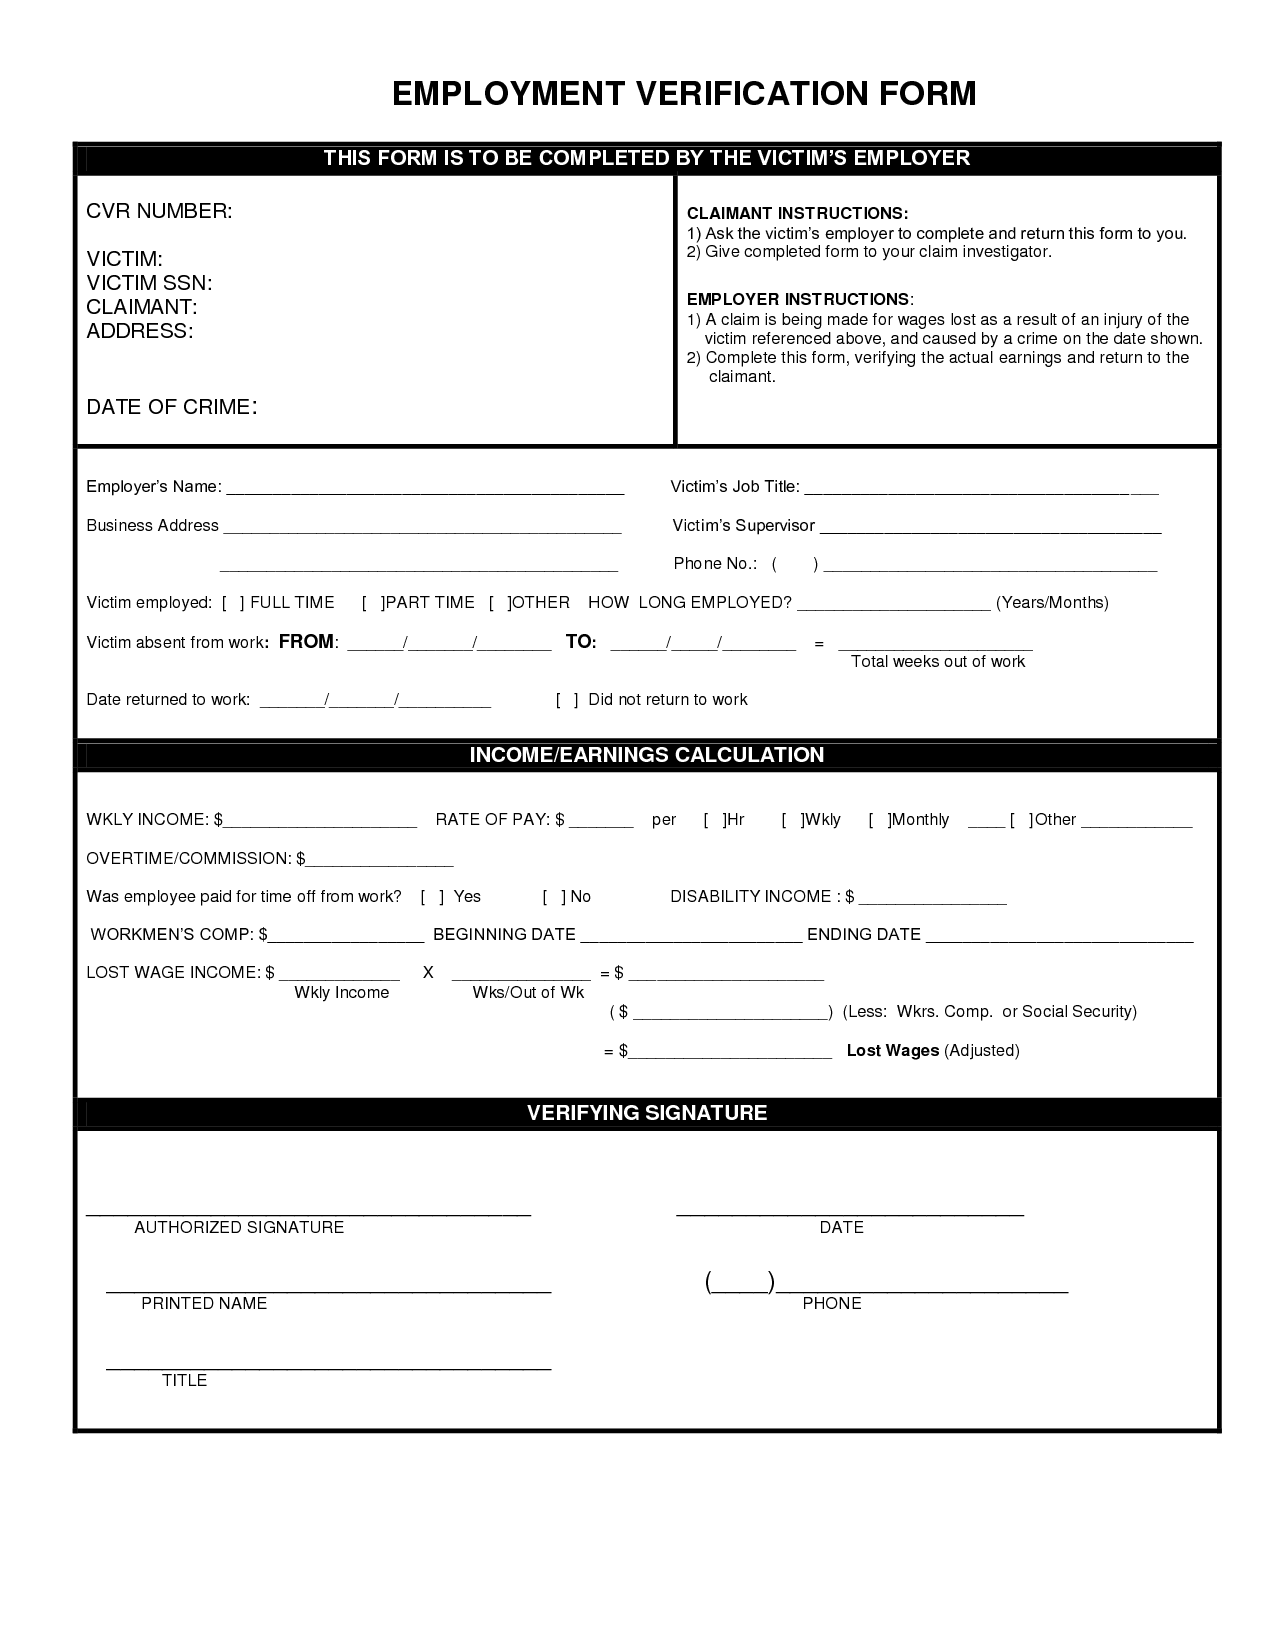 Employment Verification Form Fill Online, Printable, Fillable